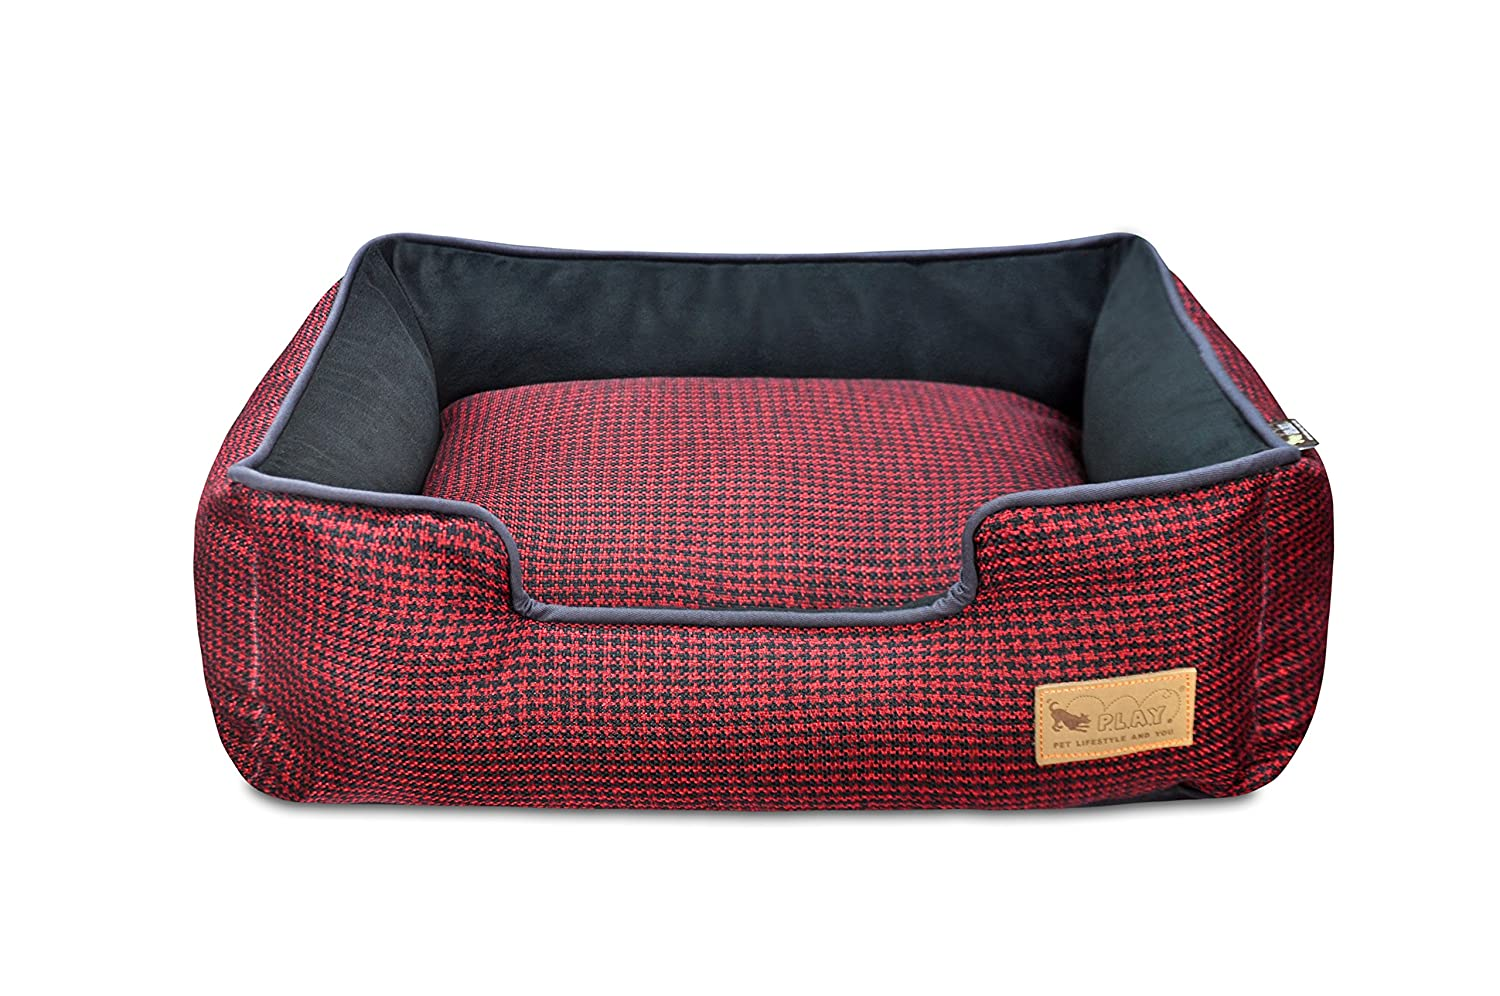 Red Black X-Large Red Black X-Large P.L.A.Y. Houndstooth Lounge Bed, X-Large, Red Black